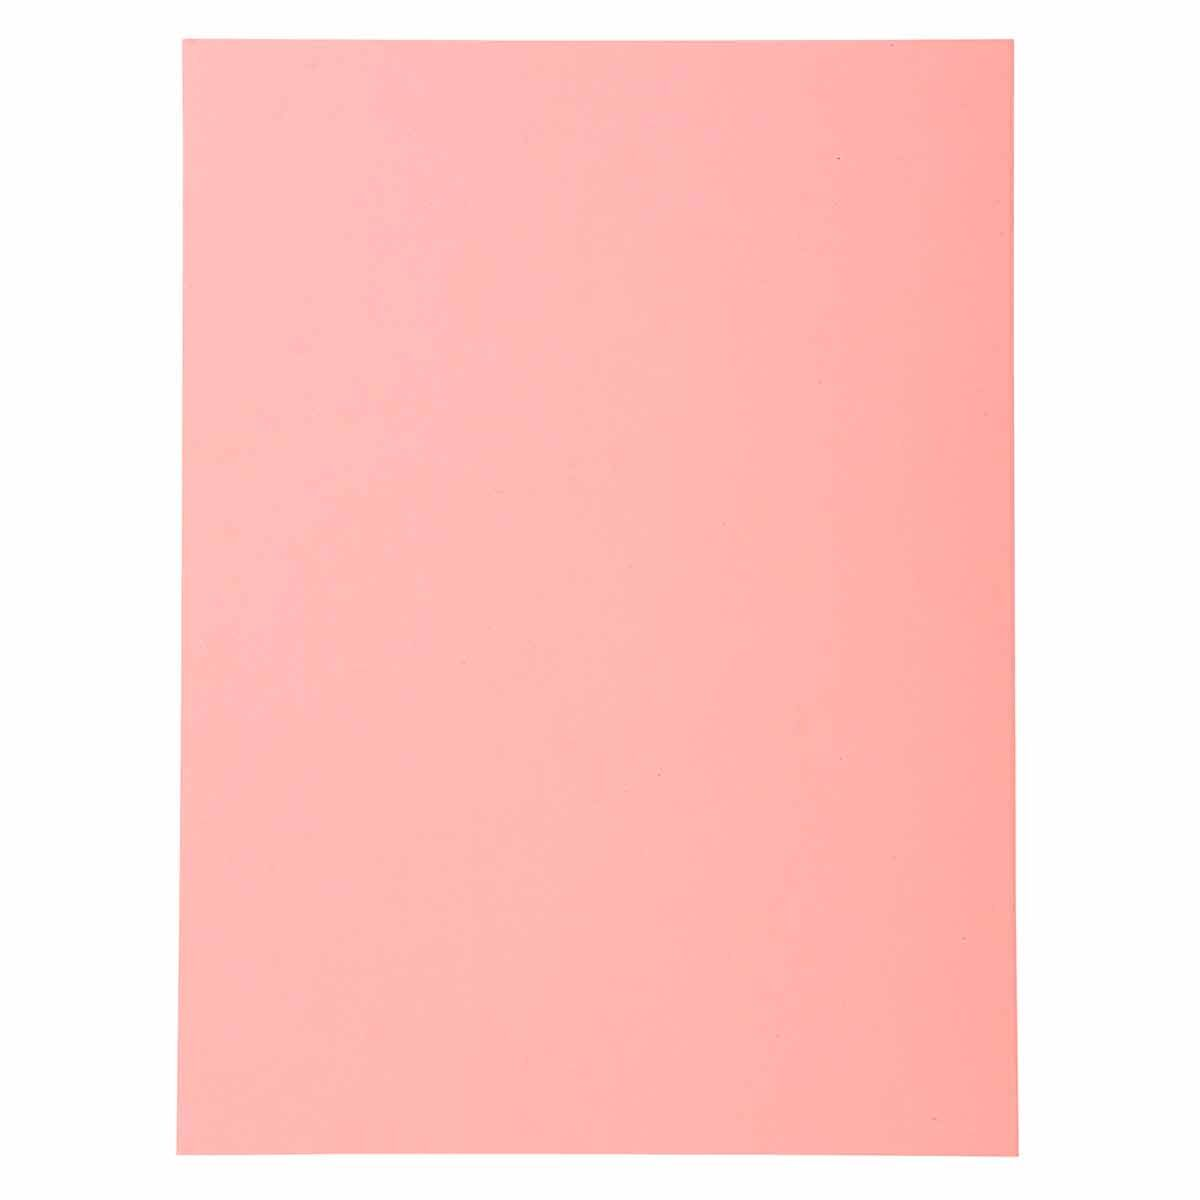 Exacompta Forever Square Cut Folders A4 170gsm 5 Packs of 100 Pink